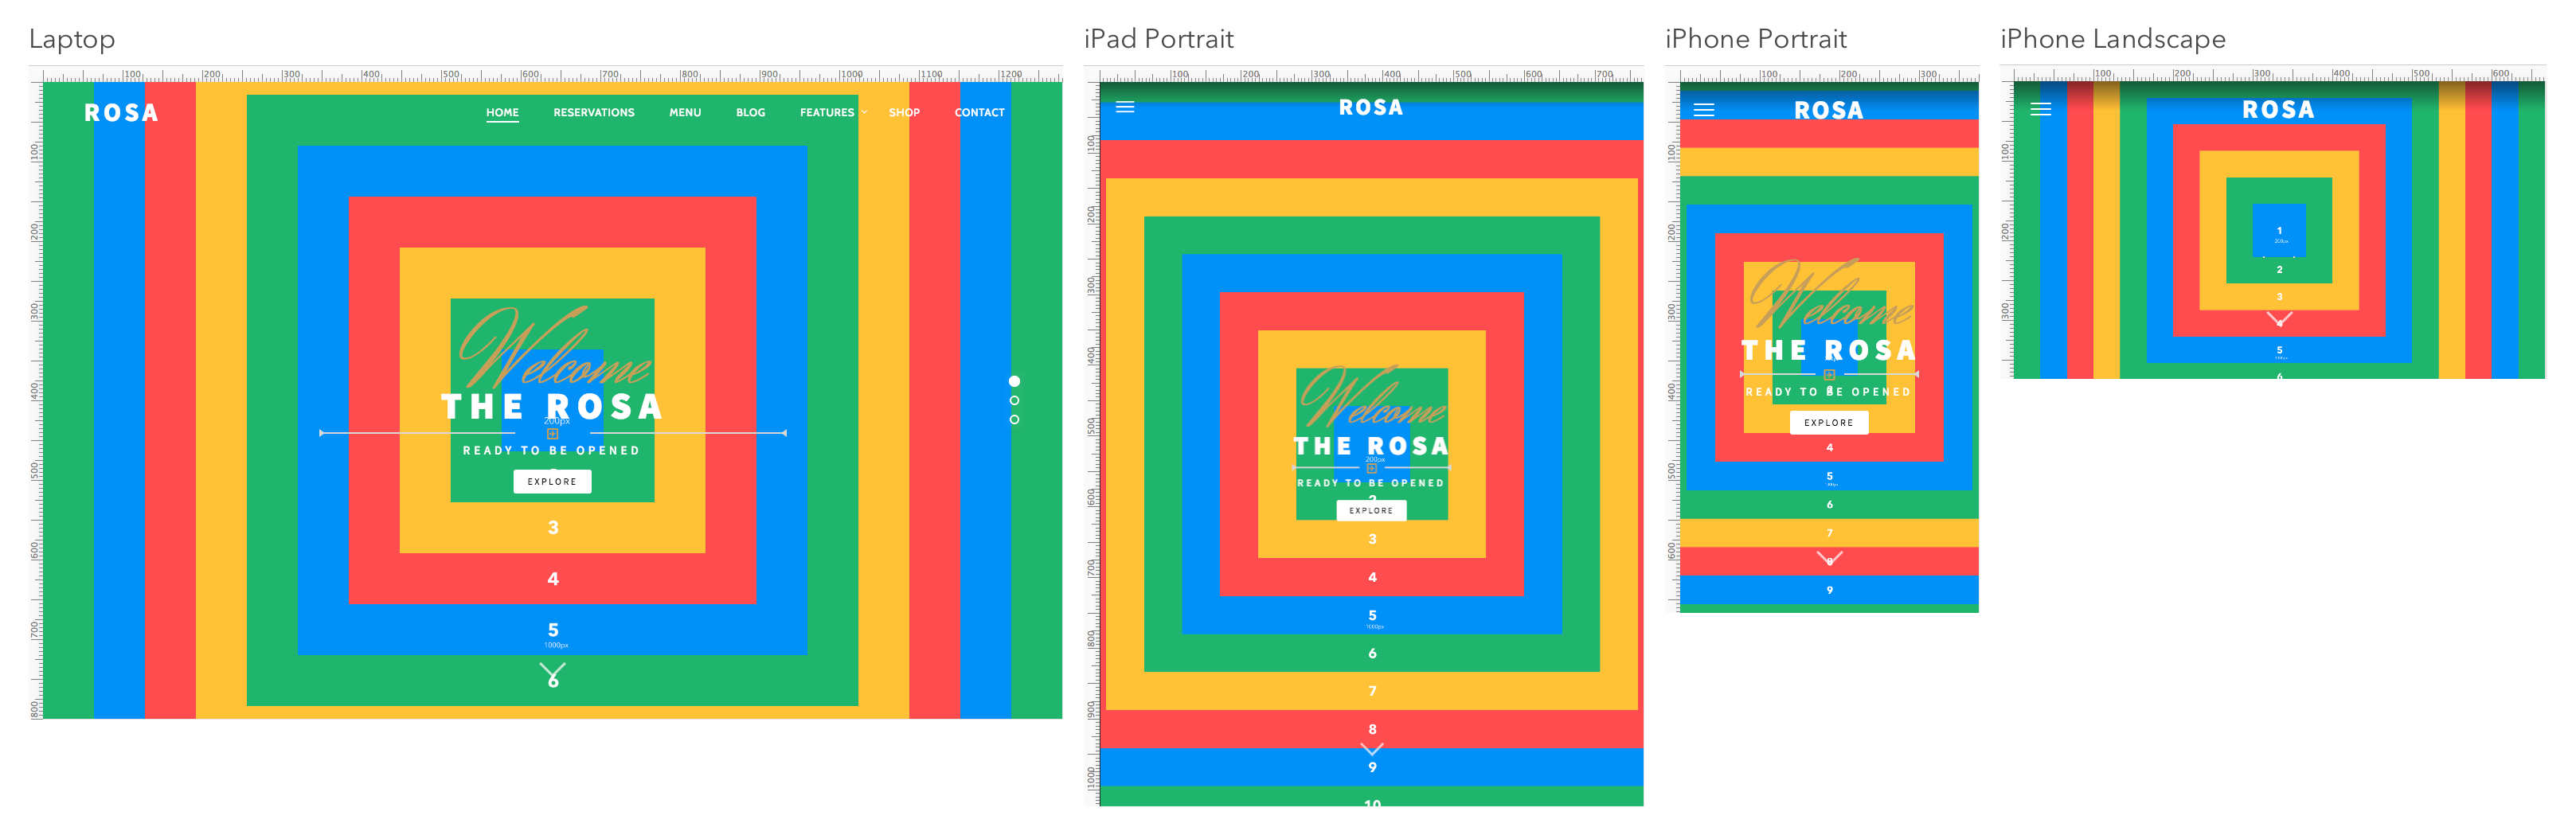 parallax image size guide for desktop, tablets, and smartphones